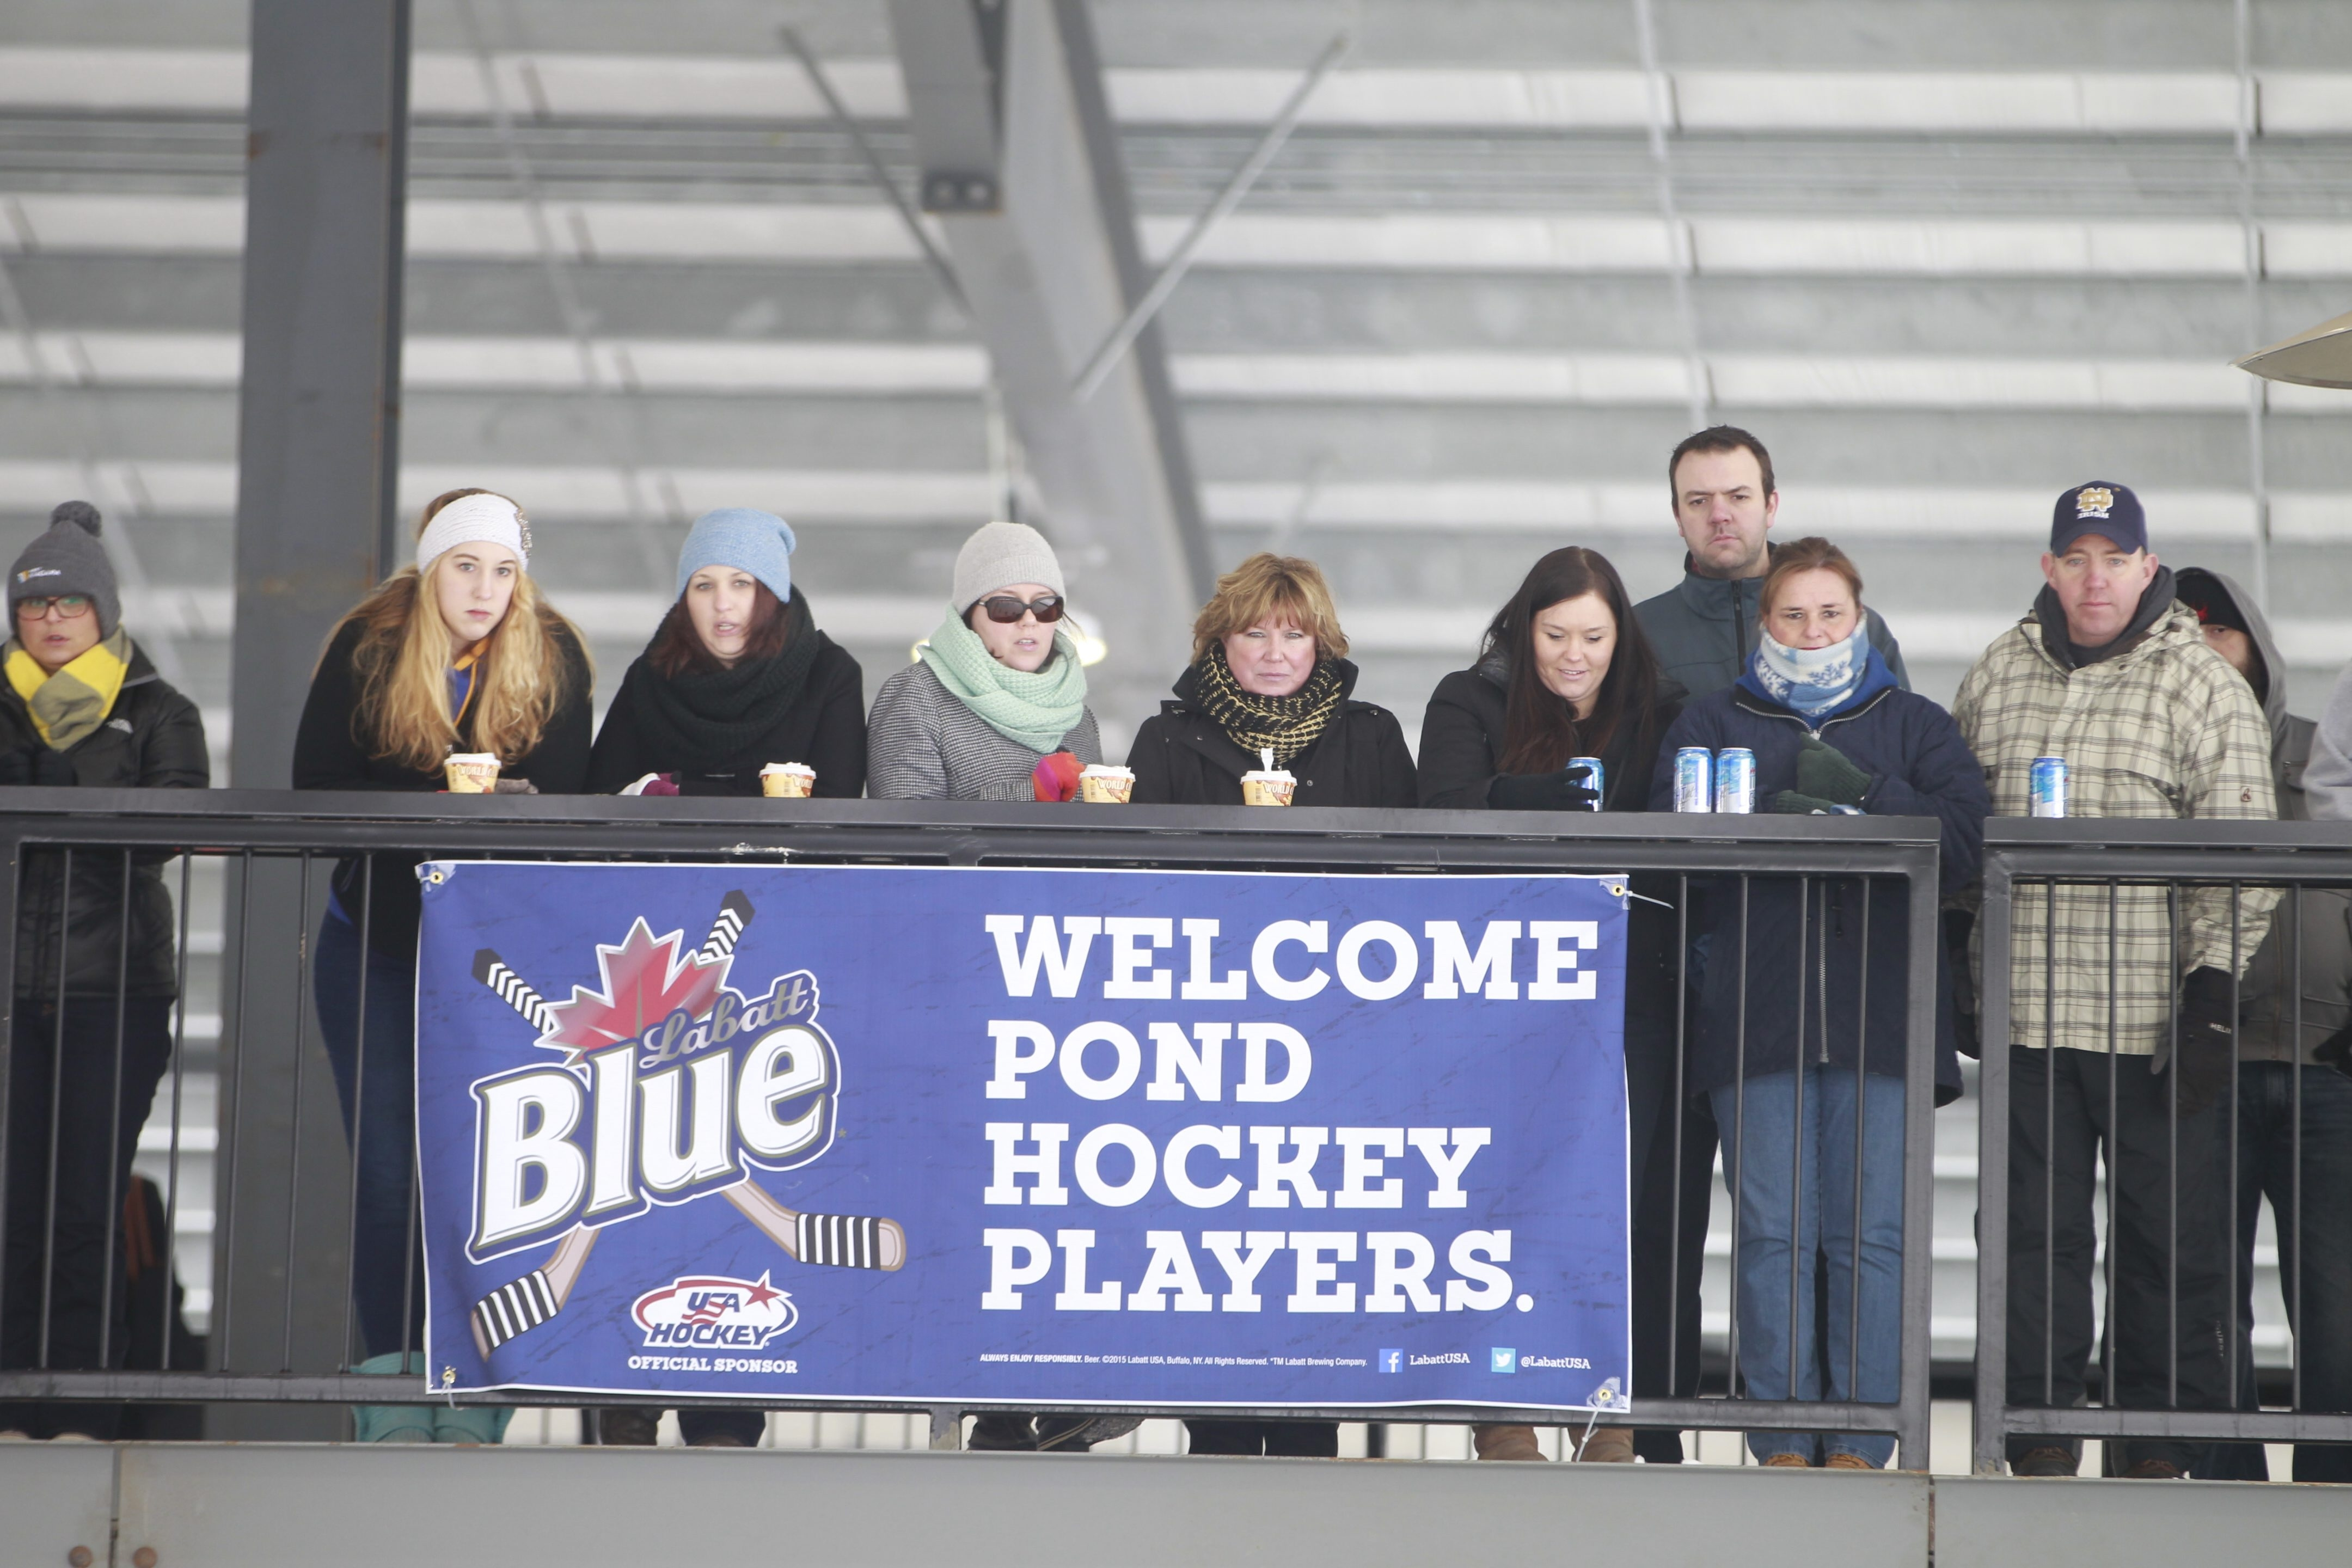 Fans in the upper deck watch the action Saturday at Labatt Blue Pond Hockey tournament at Buffalo RiverWorks. The three-day tourney that started with 144 teams in 12 divisions wraps up Sunday.